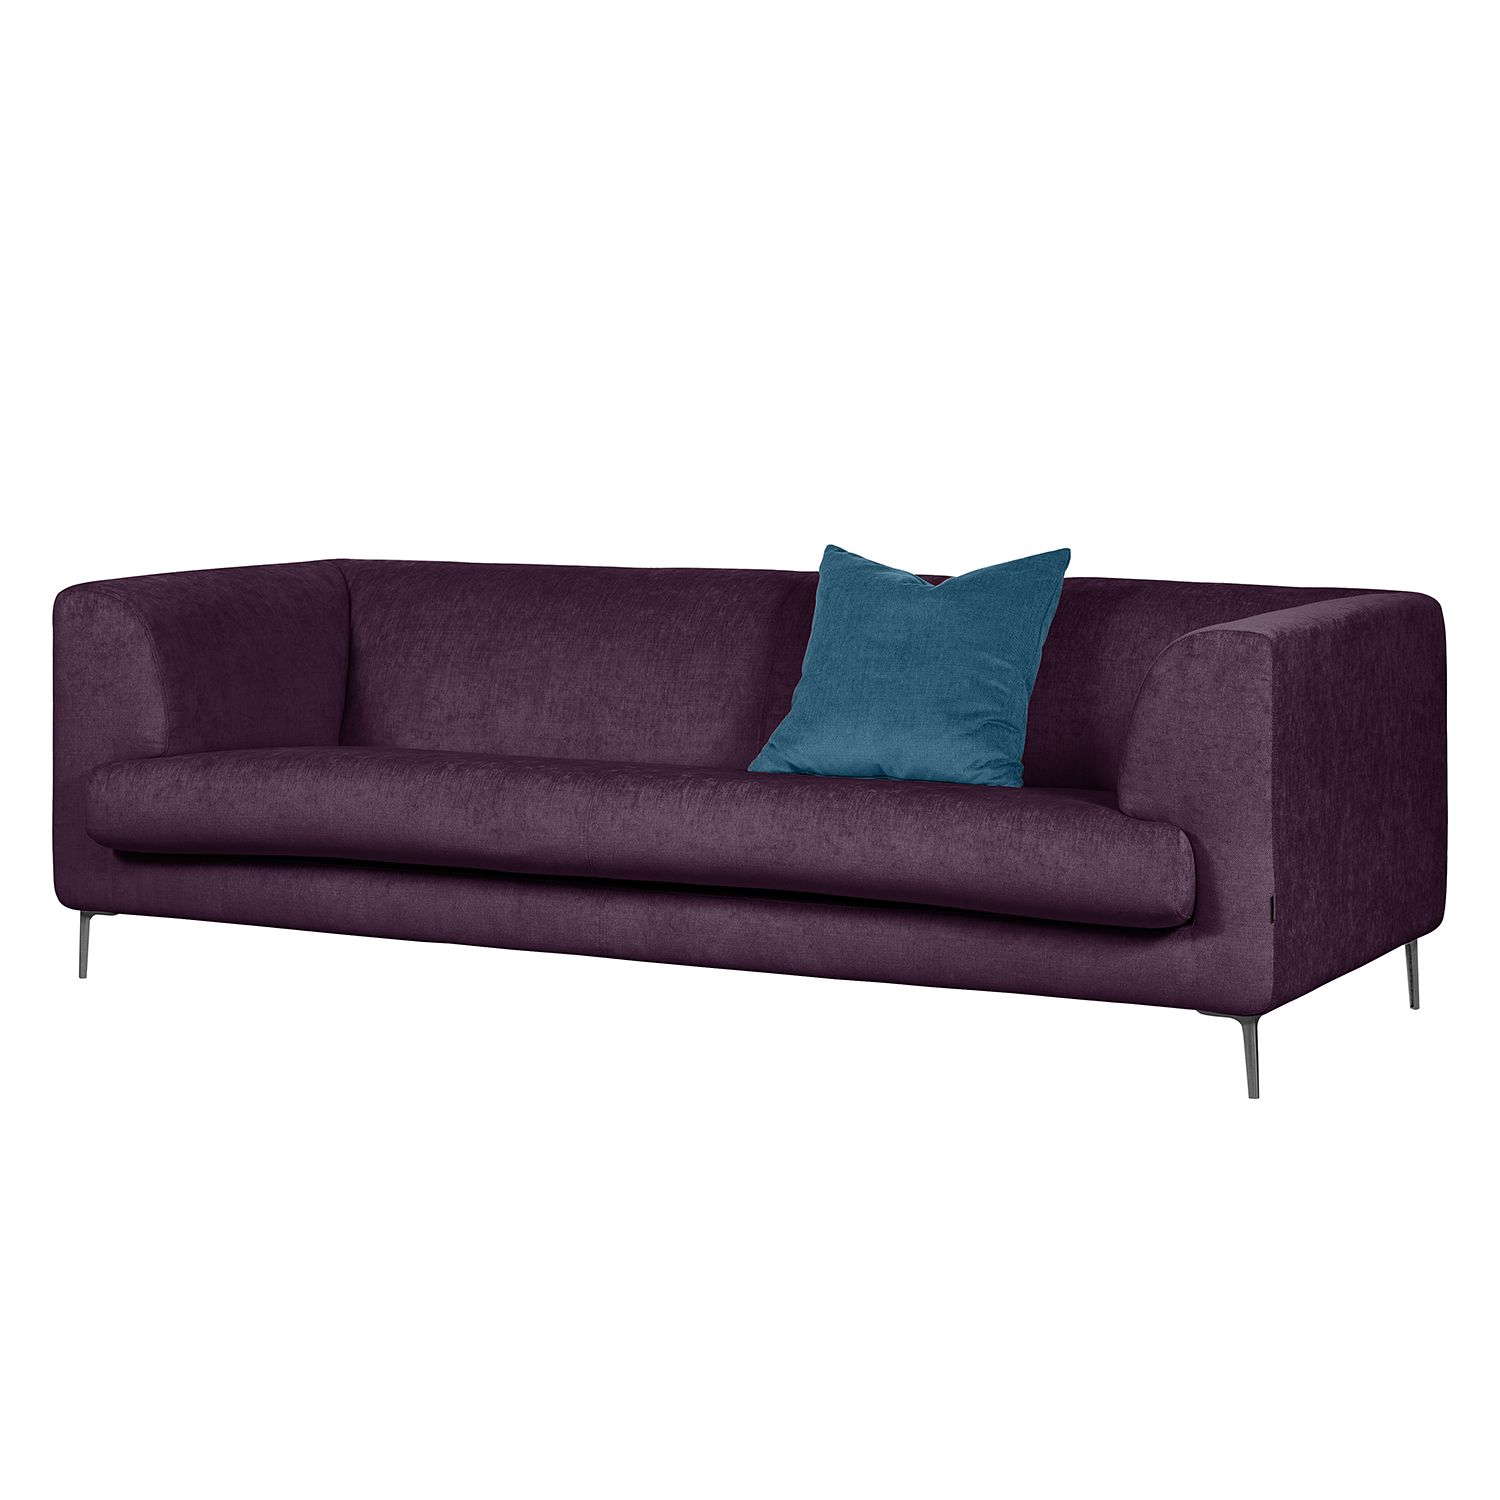 Bank Ijsblauw Retro 3zits Bank Nano Aubergine Zen Lifestyle In De